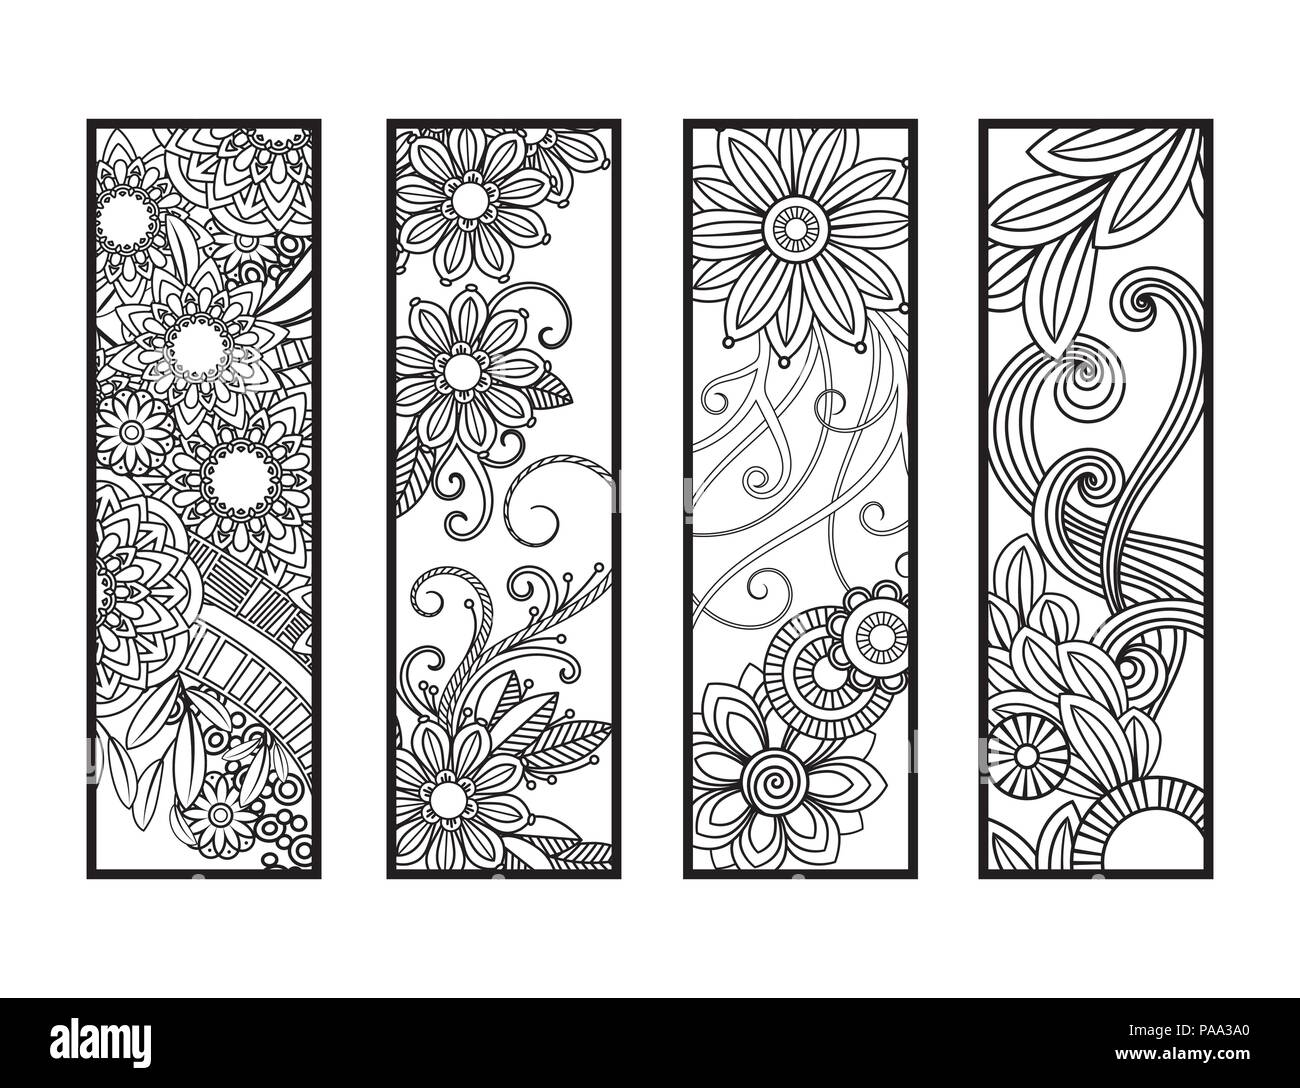 Black And White Banner Imágenes De Stock & Black And White Banner ...